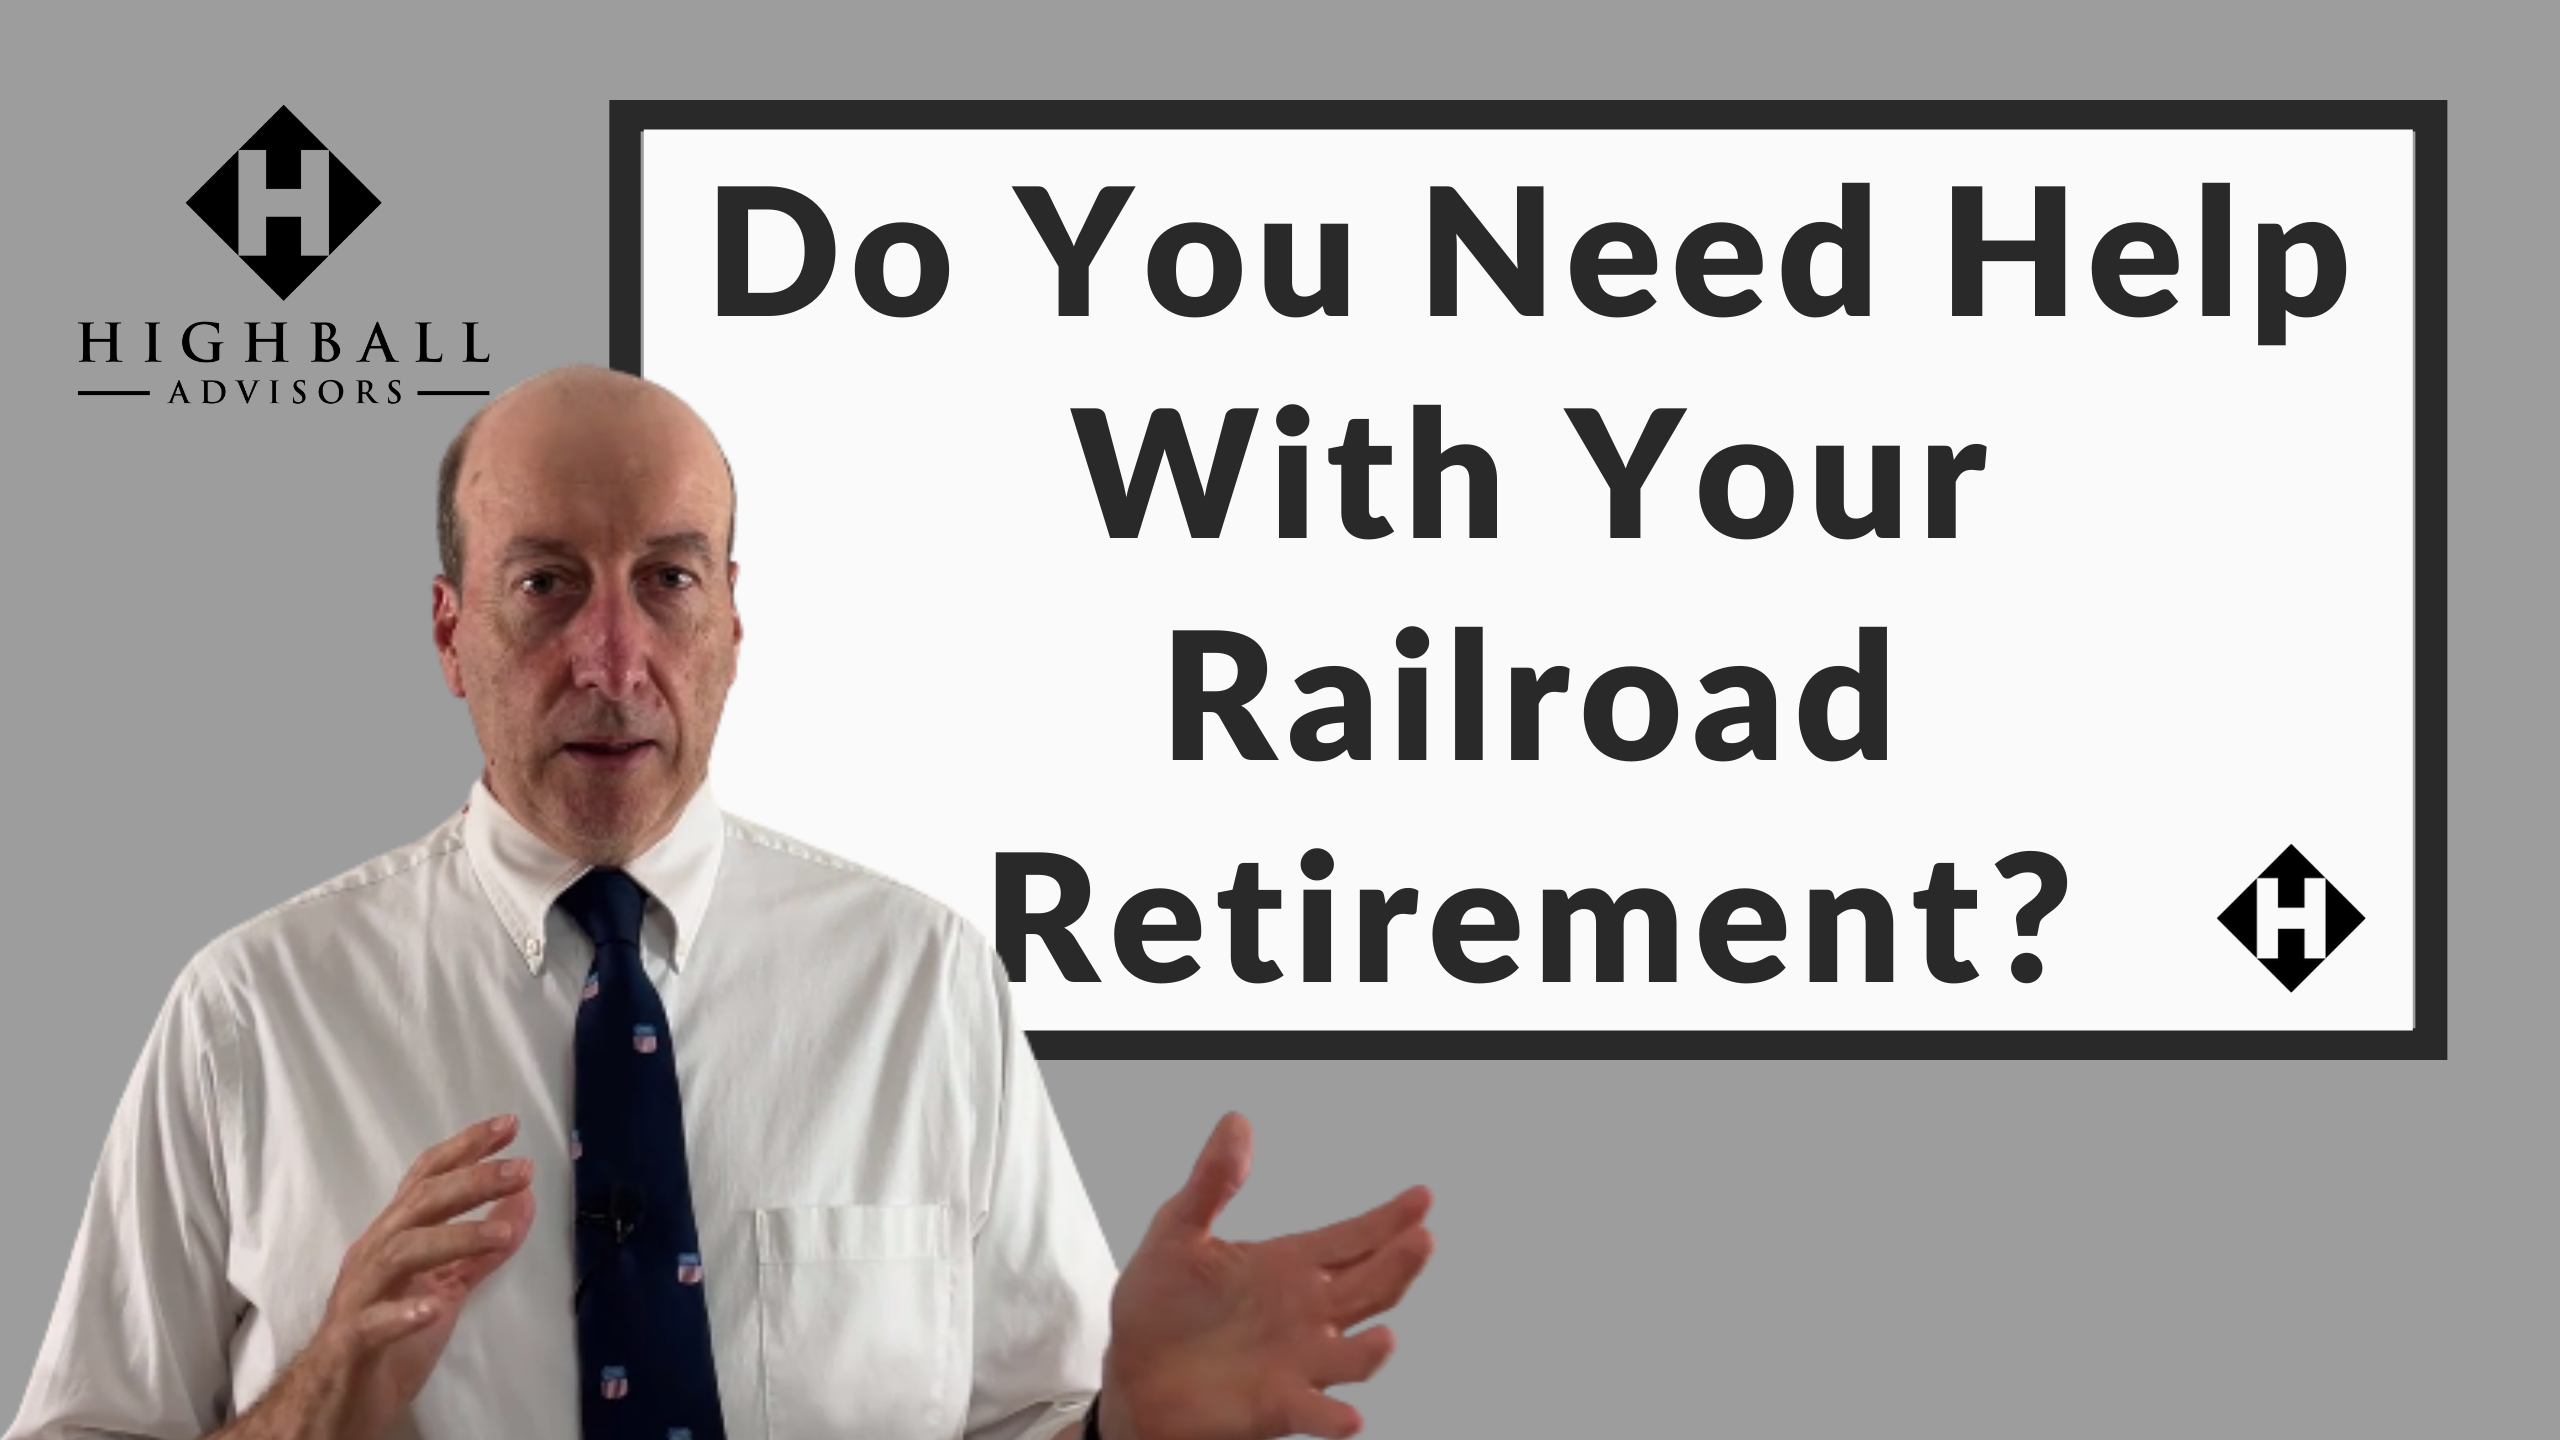 Do You Need Help With Your Railroad Retirement? Thumbnail